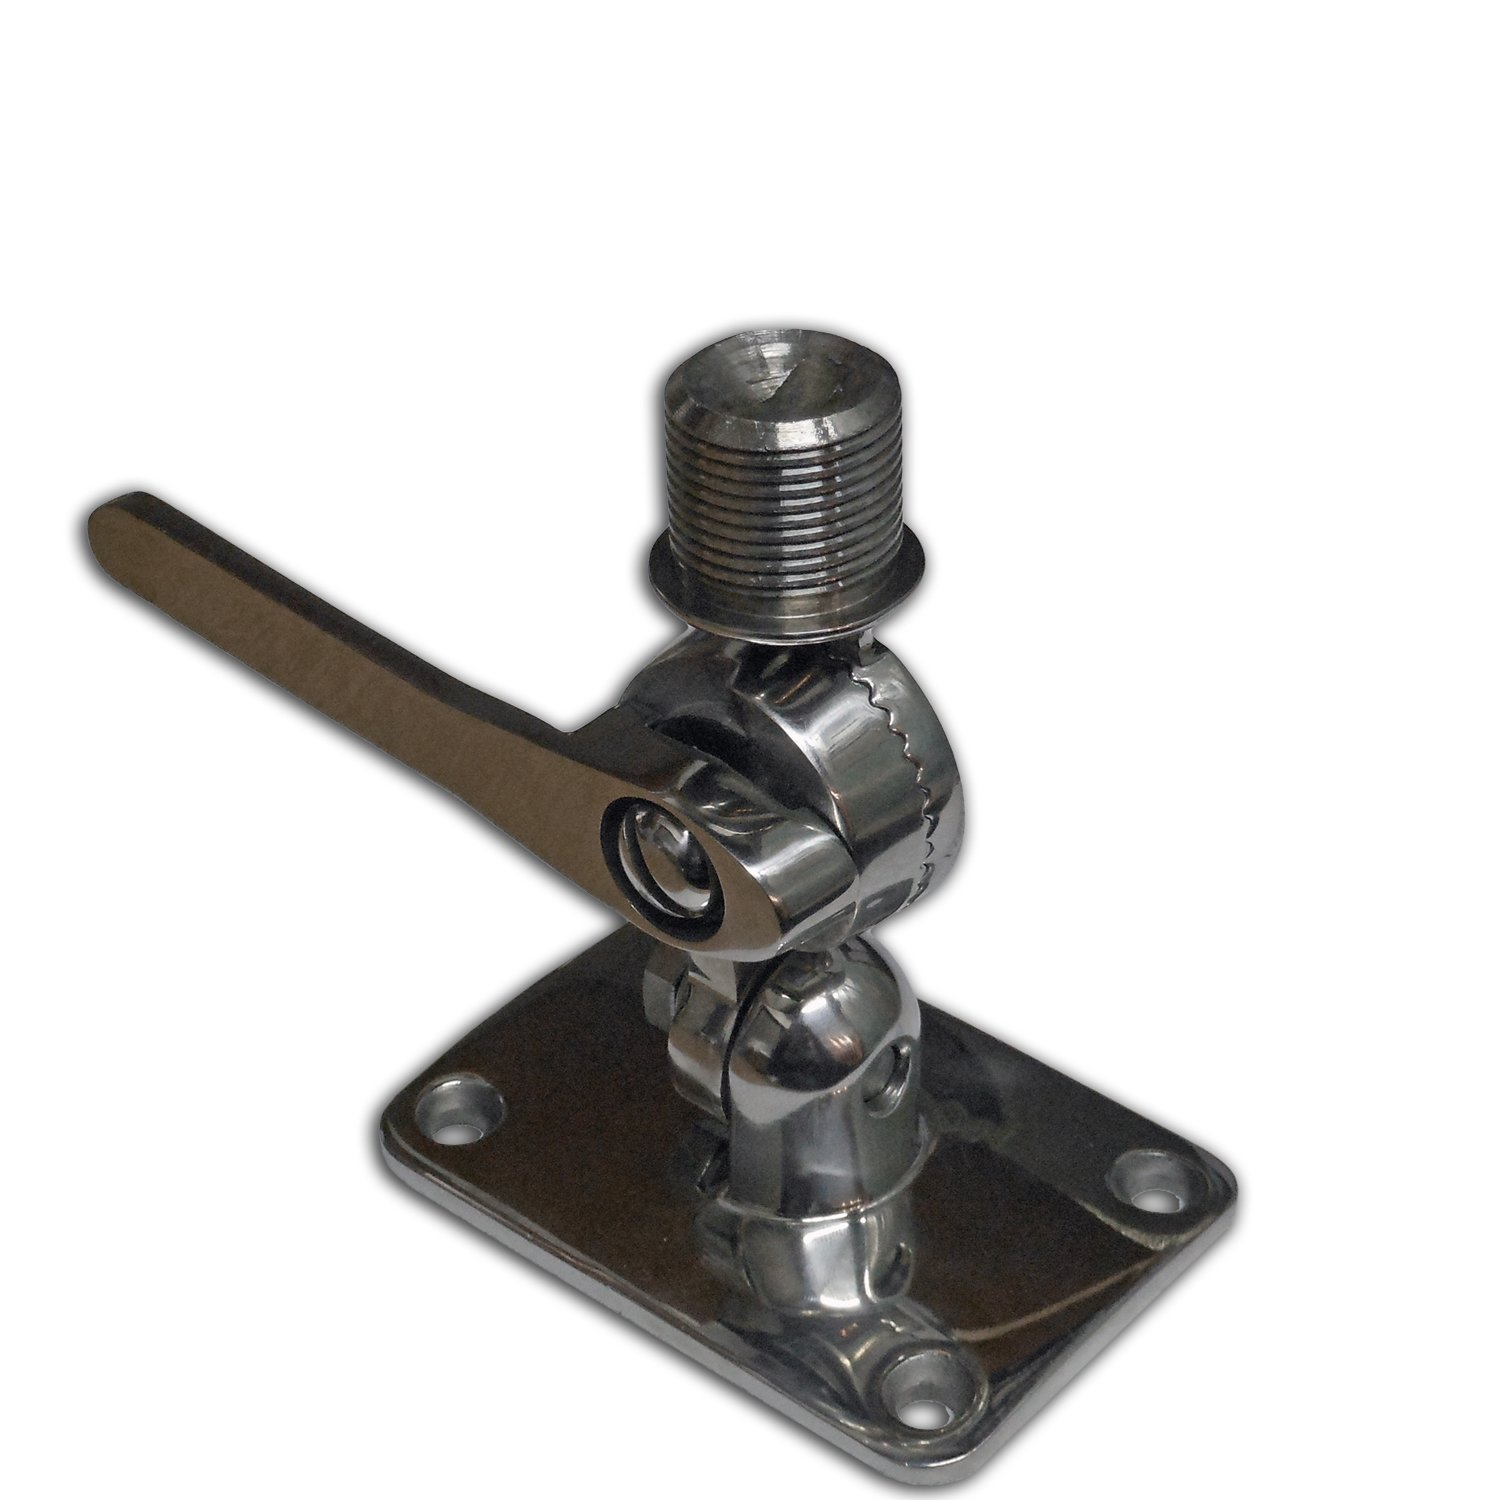 M&R INDUSTRIL Marine Vhf Antenna 316 Stainless Steel Adjustable Base Mount for Boats